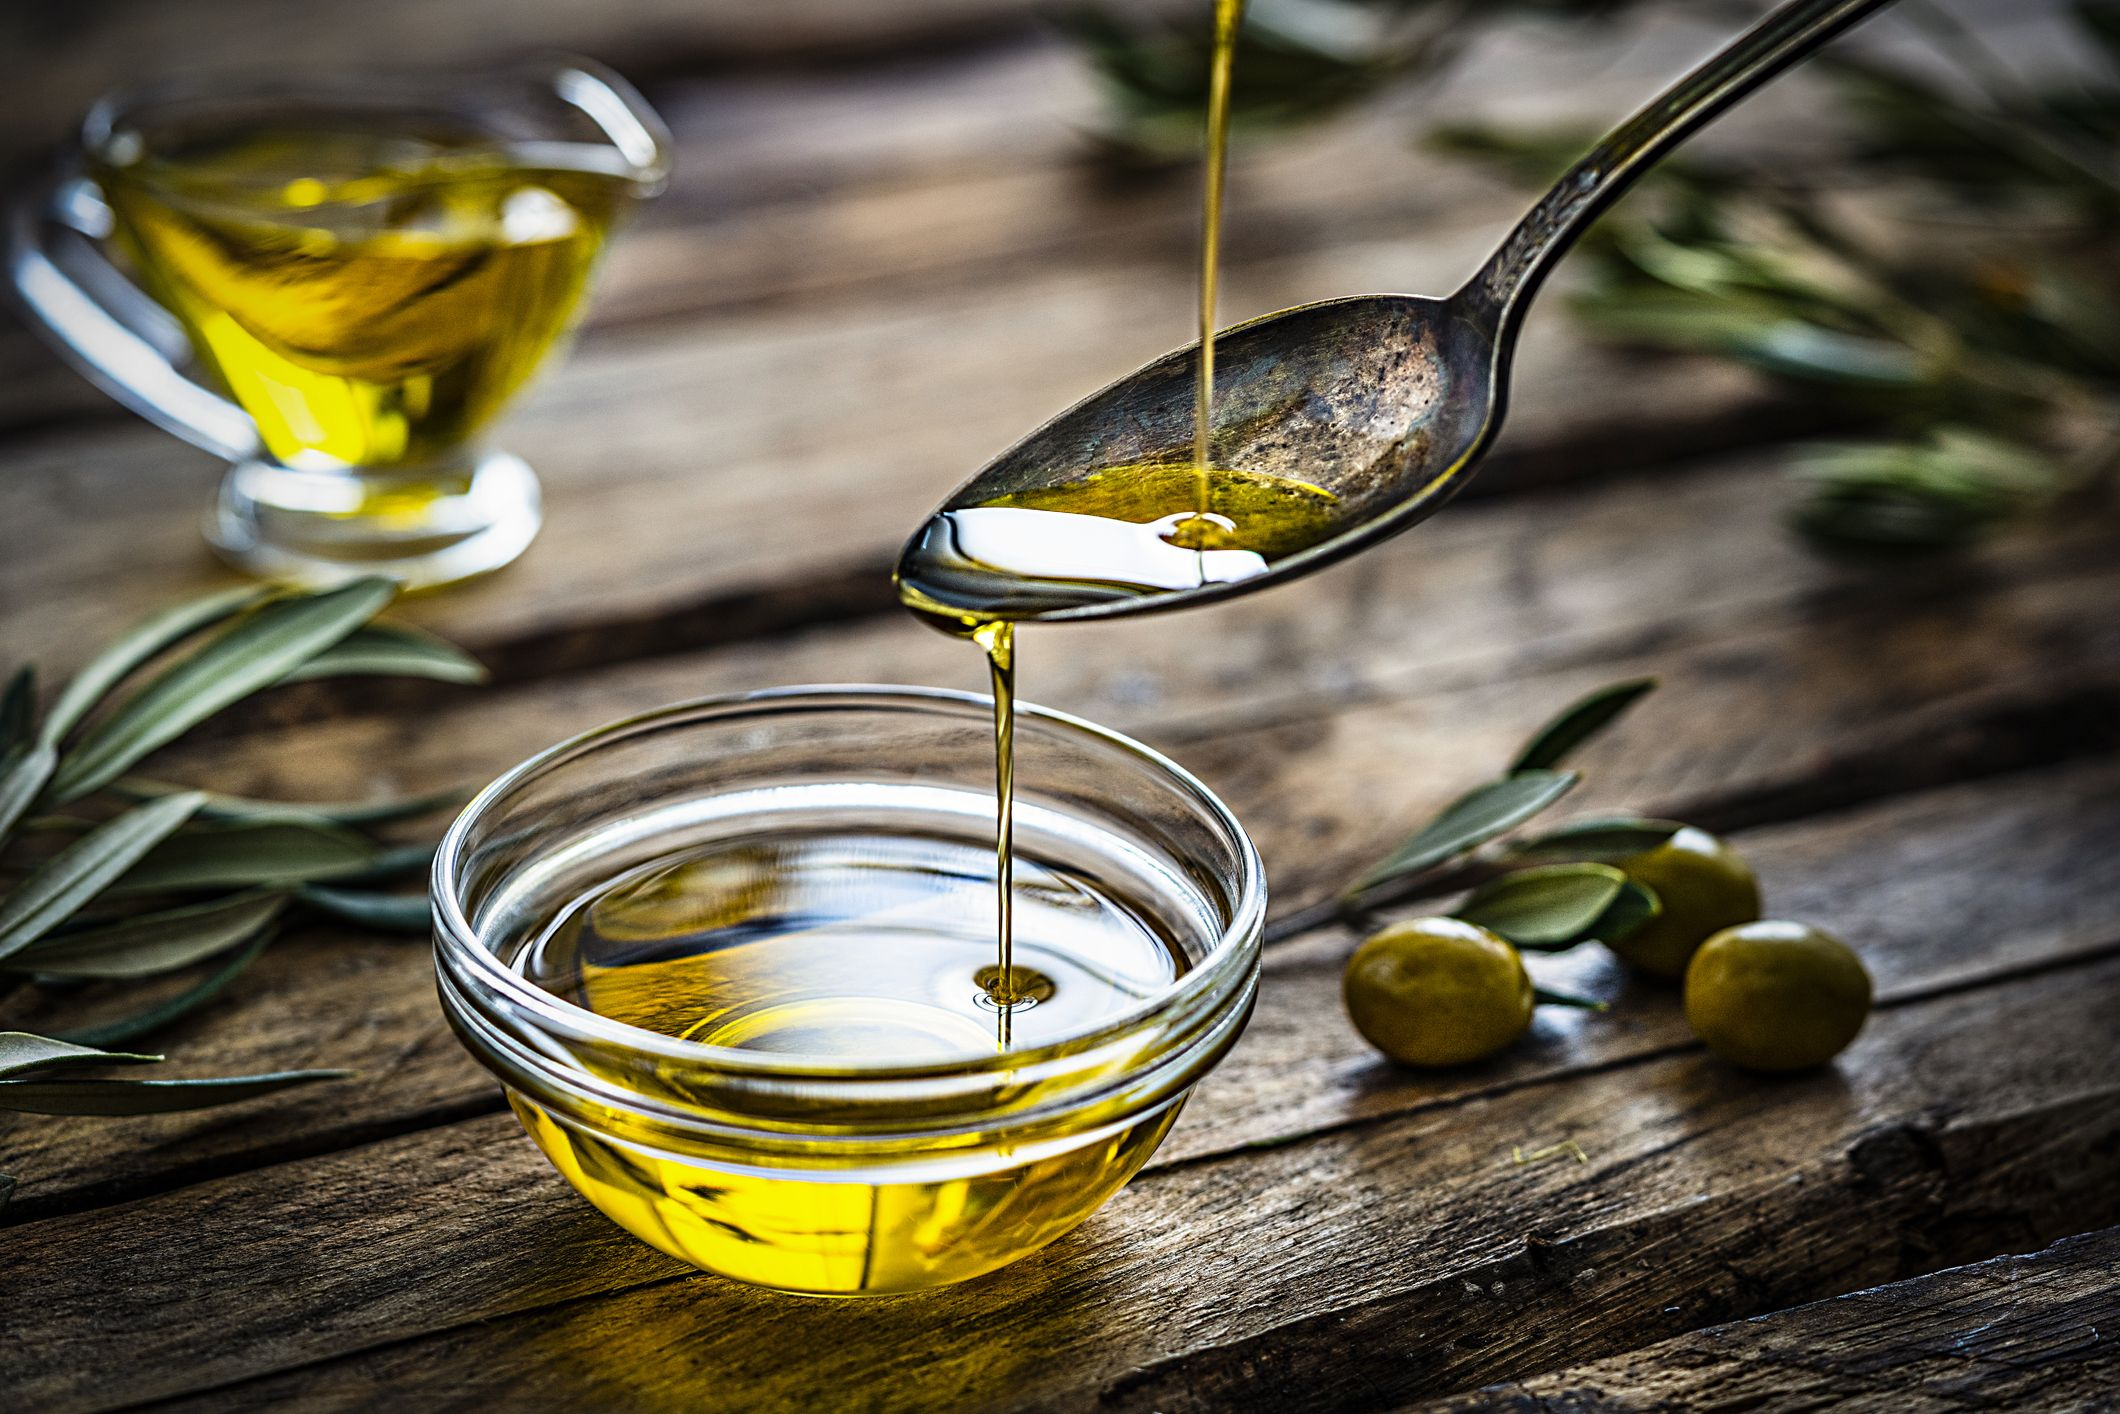 The-Best-Olive-Oil-For-Cooking-Your-Every-Food